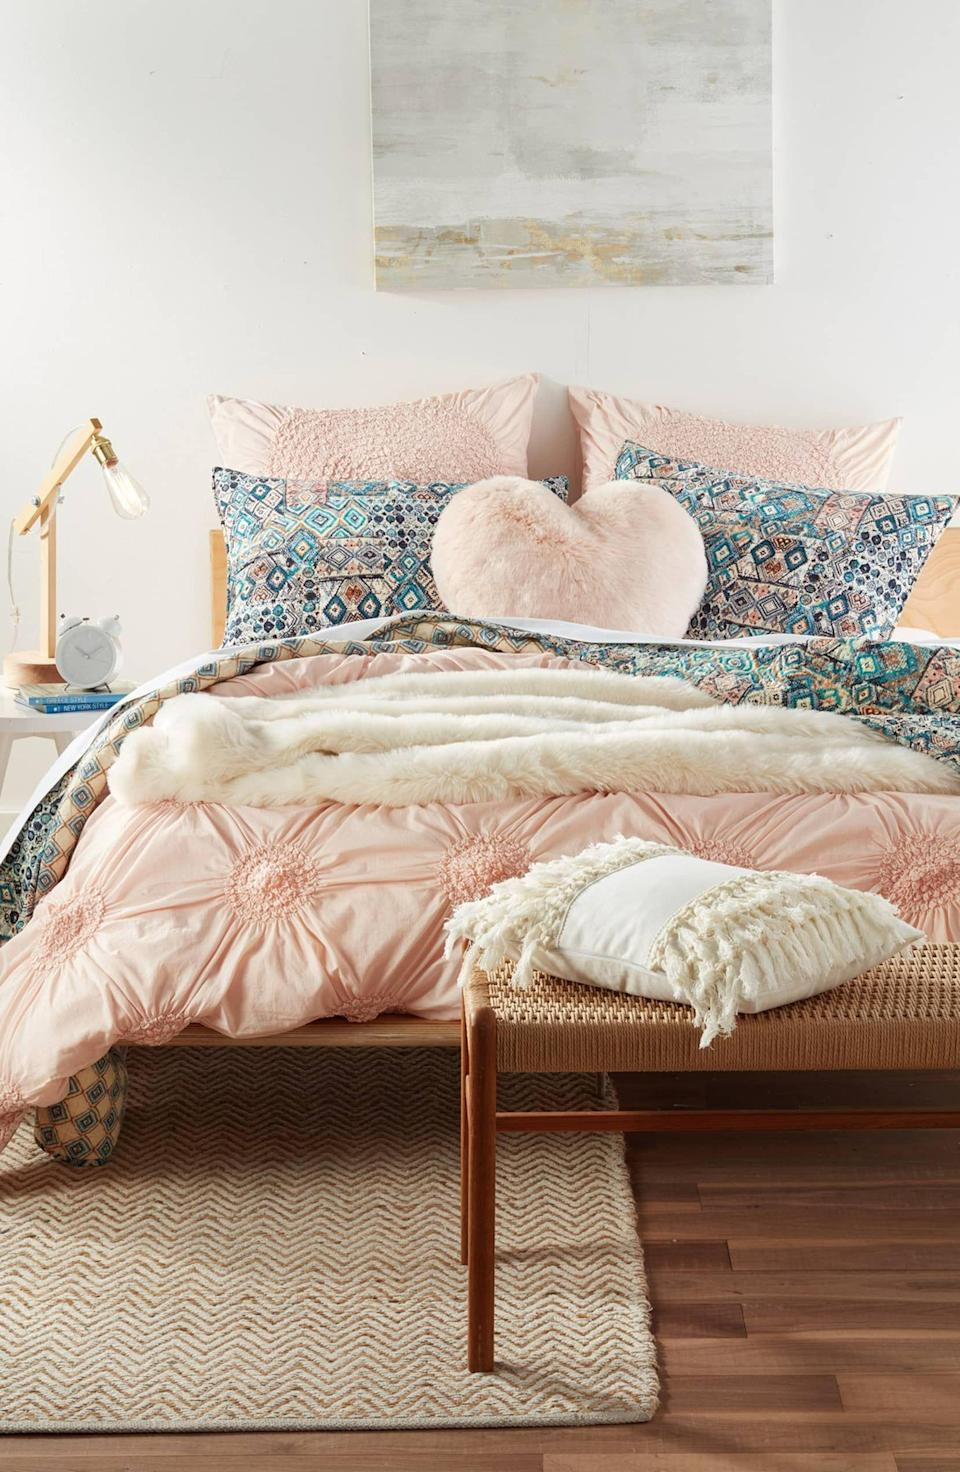 """<p>If your <a href=""""https://www.housebeautiful.com/lifestyle/cleaning-tips/a33482200/how-to-clean-a-mattress/"""" rel=""""nofollow noopener"""" target=""""_blank"""" data-ylk=""""slk:mattress"""" class=""""link rapid-noclick-resp"""">mattress</a> is on its final leg or the floor lamp you inherited from your aunt nearly a decade ago is in need of replacing, the <a href=""""https://www.housebeautiful.com/lifestyle/a30299658/new-years-instagram-captions/"""" rel=""""nofollow noopener"""" target=""""_blank"""" data-ylk=""""slk:end of the year"""" class=""""link rapid-noclick-resp"""">end of the year </a>is the perfect time do exactly that: replace and revamp. In addition to giving your home a refreshing reset before the <a href=""""https://www.housebeautiful.com/lifestyle/a35074187/hallmark-new-year-new-movies-2021-lineup-premiere-info/"""" rel=""""nofollow noopener"""" target=""""_blank"""" data-ylk=""""slk:new year"""" class=""""link rapid-noclick-resp"""">new year</a> rolls around, the end of the year is easy on the wallet thanks to the increased number of sales.</p><p>Among the retailers offering slashed prices to customers in the final days of 2020 is Nordstrom. Their Half-Yearly Sale is taking place now until January 3, 2021, and you can save up to 40 percent on home goods. Need a cozy throw blanket? They've got it. How about an aromatherapy diffuser to keep the good vibes going? They've got that too.</p><p>If Nordstrom's selection of discounted home goods has left you a little overwhelmed, consider opting for one of the products ahead.</p>"""